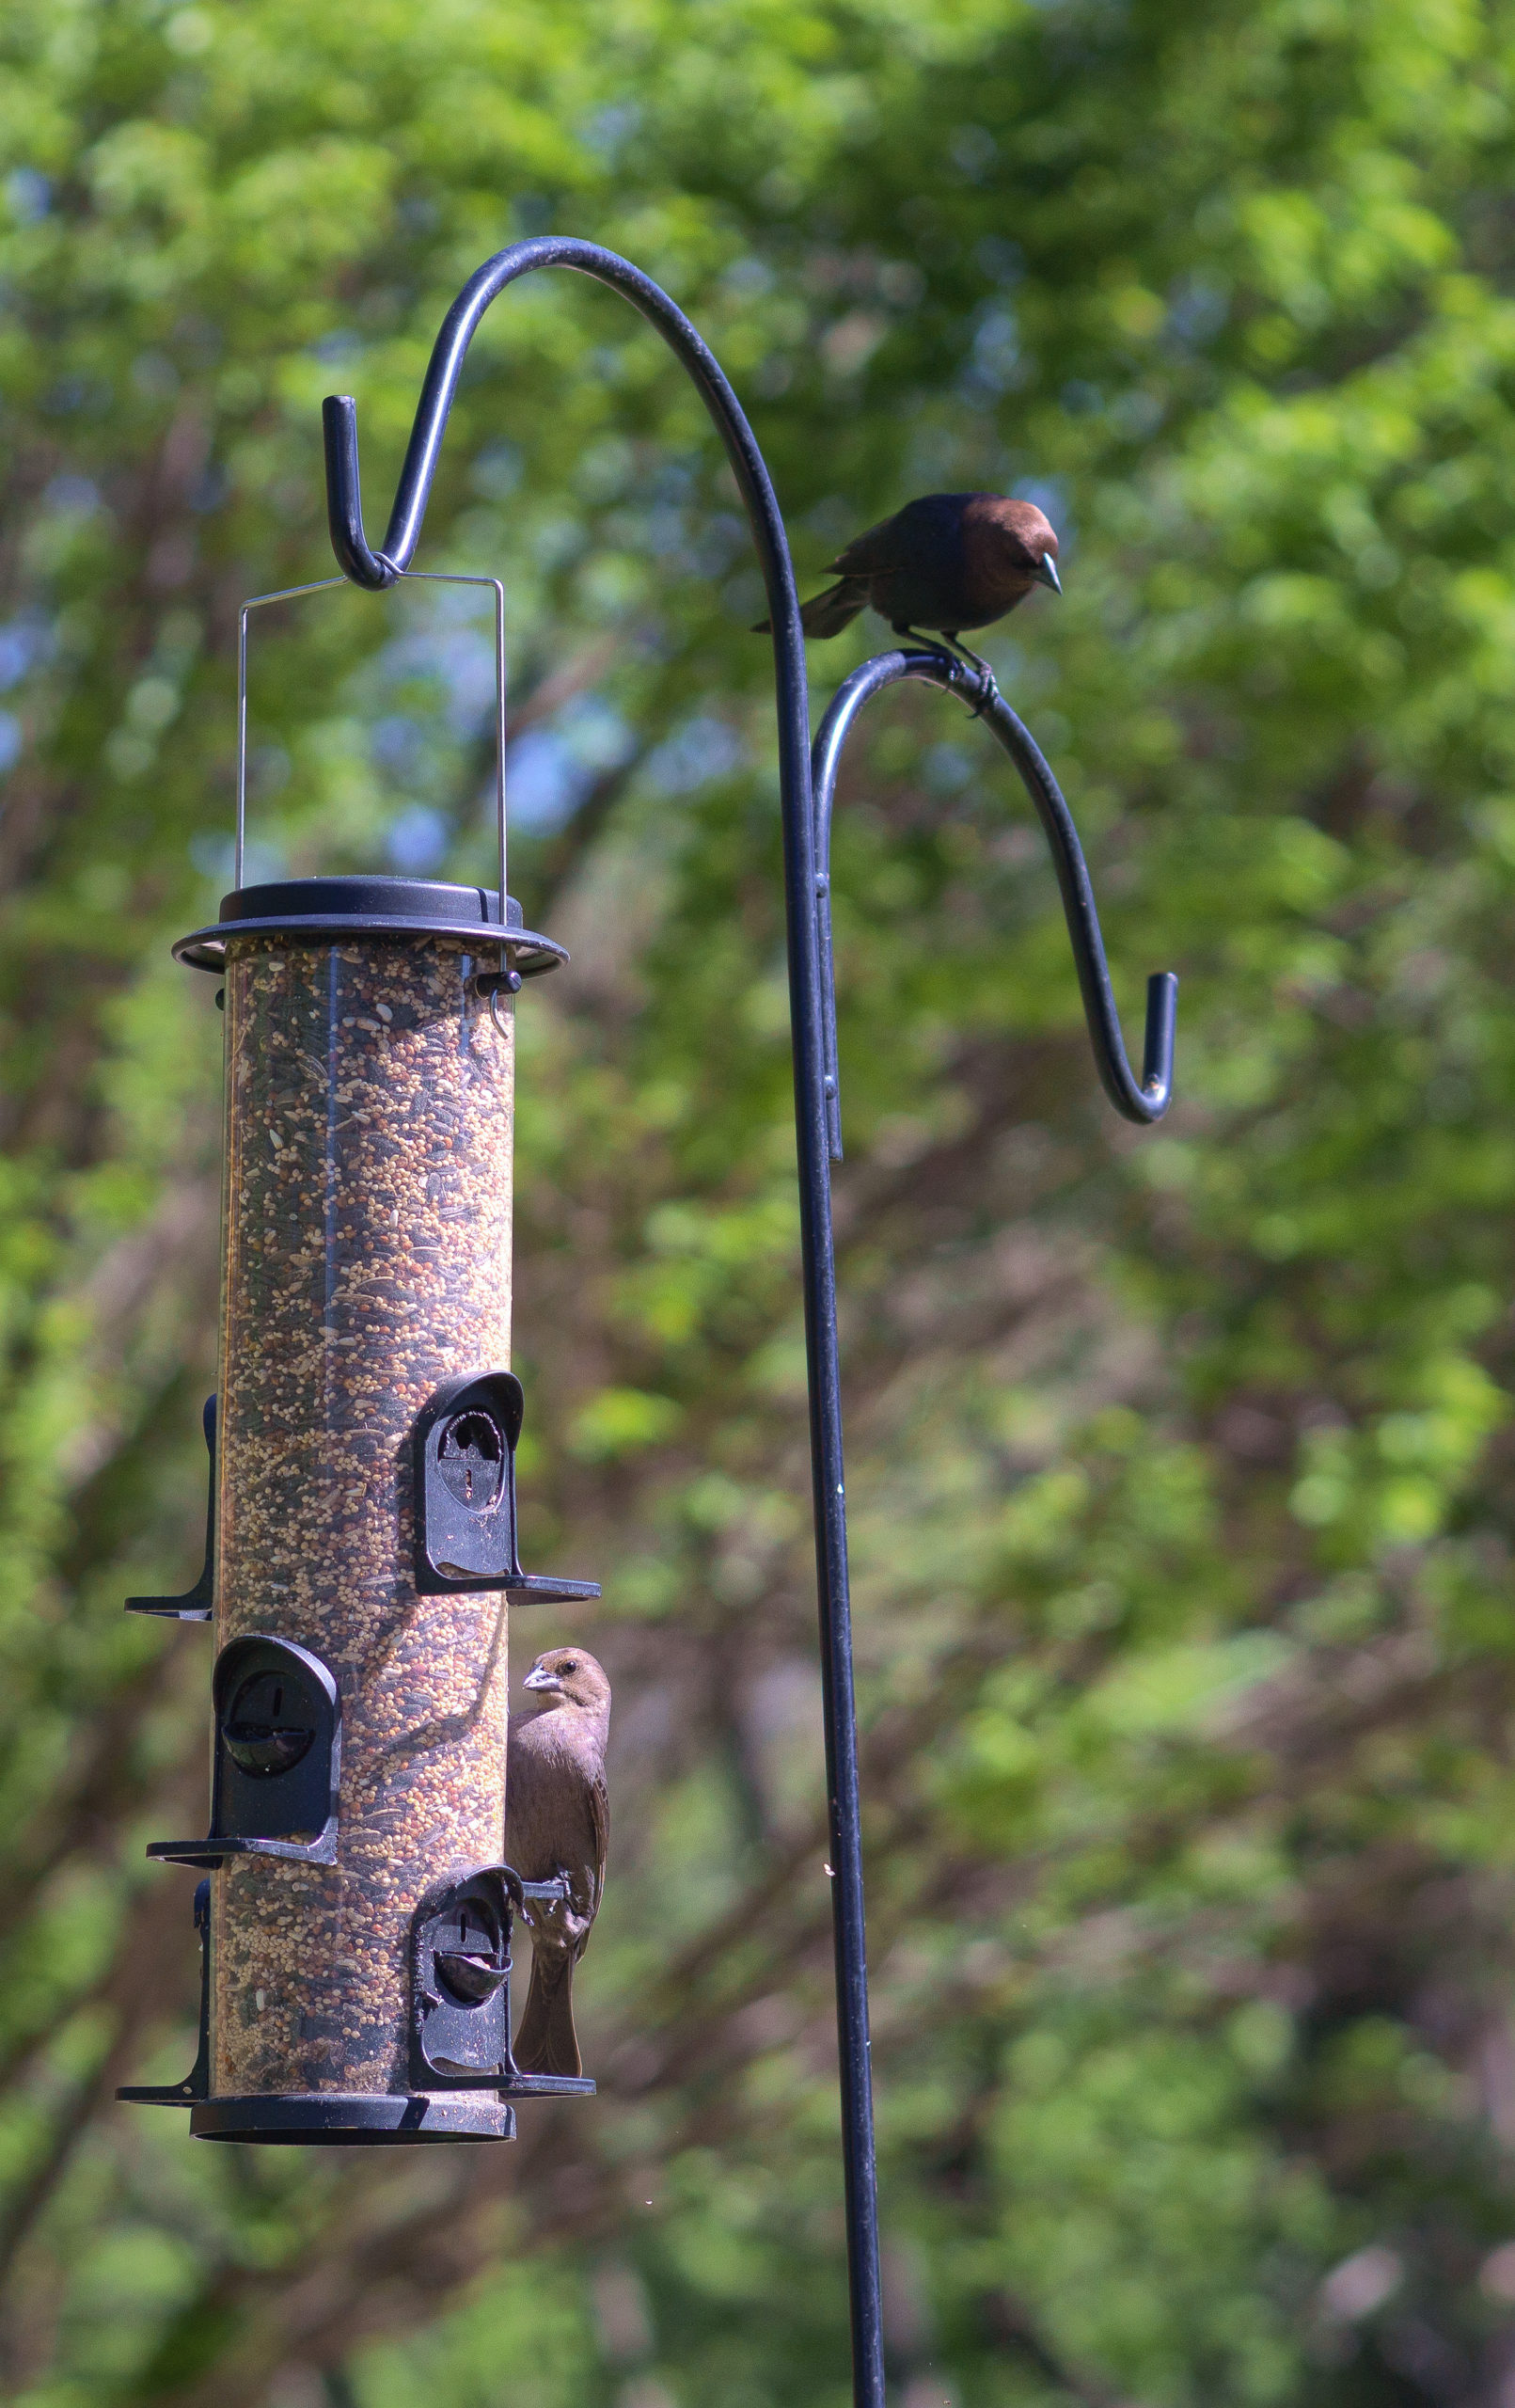 A brown bird on a hanging feeder and a black bird perched on top of the feeder